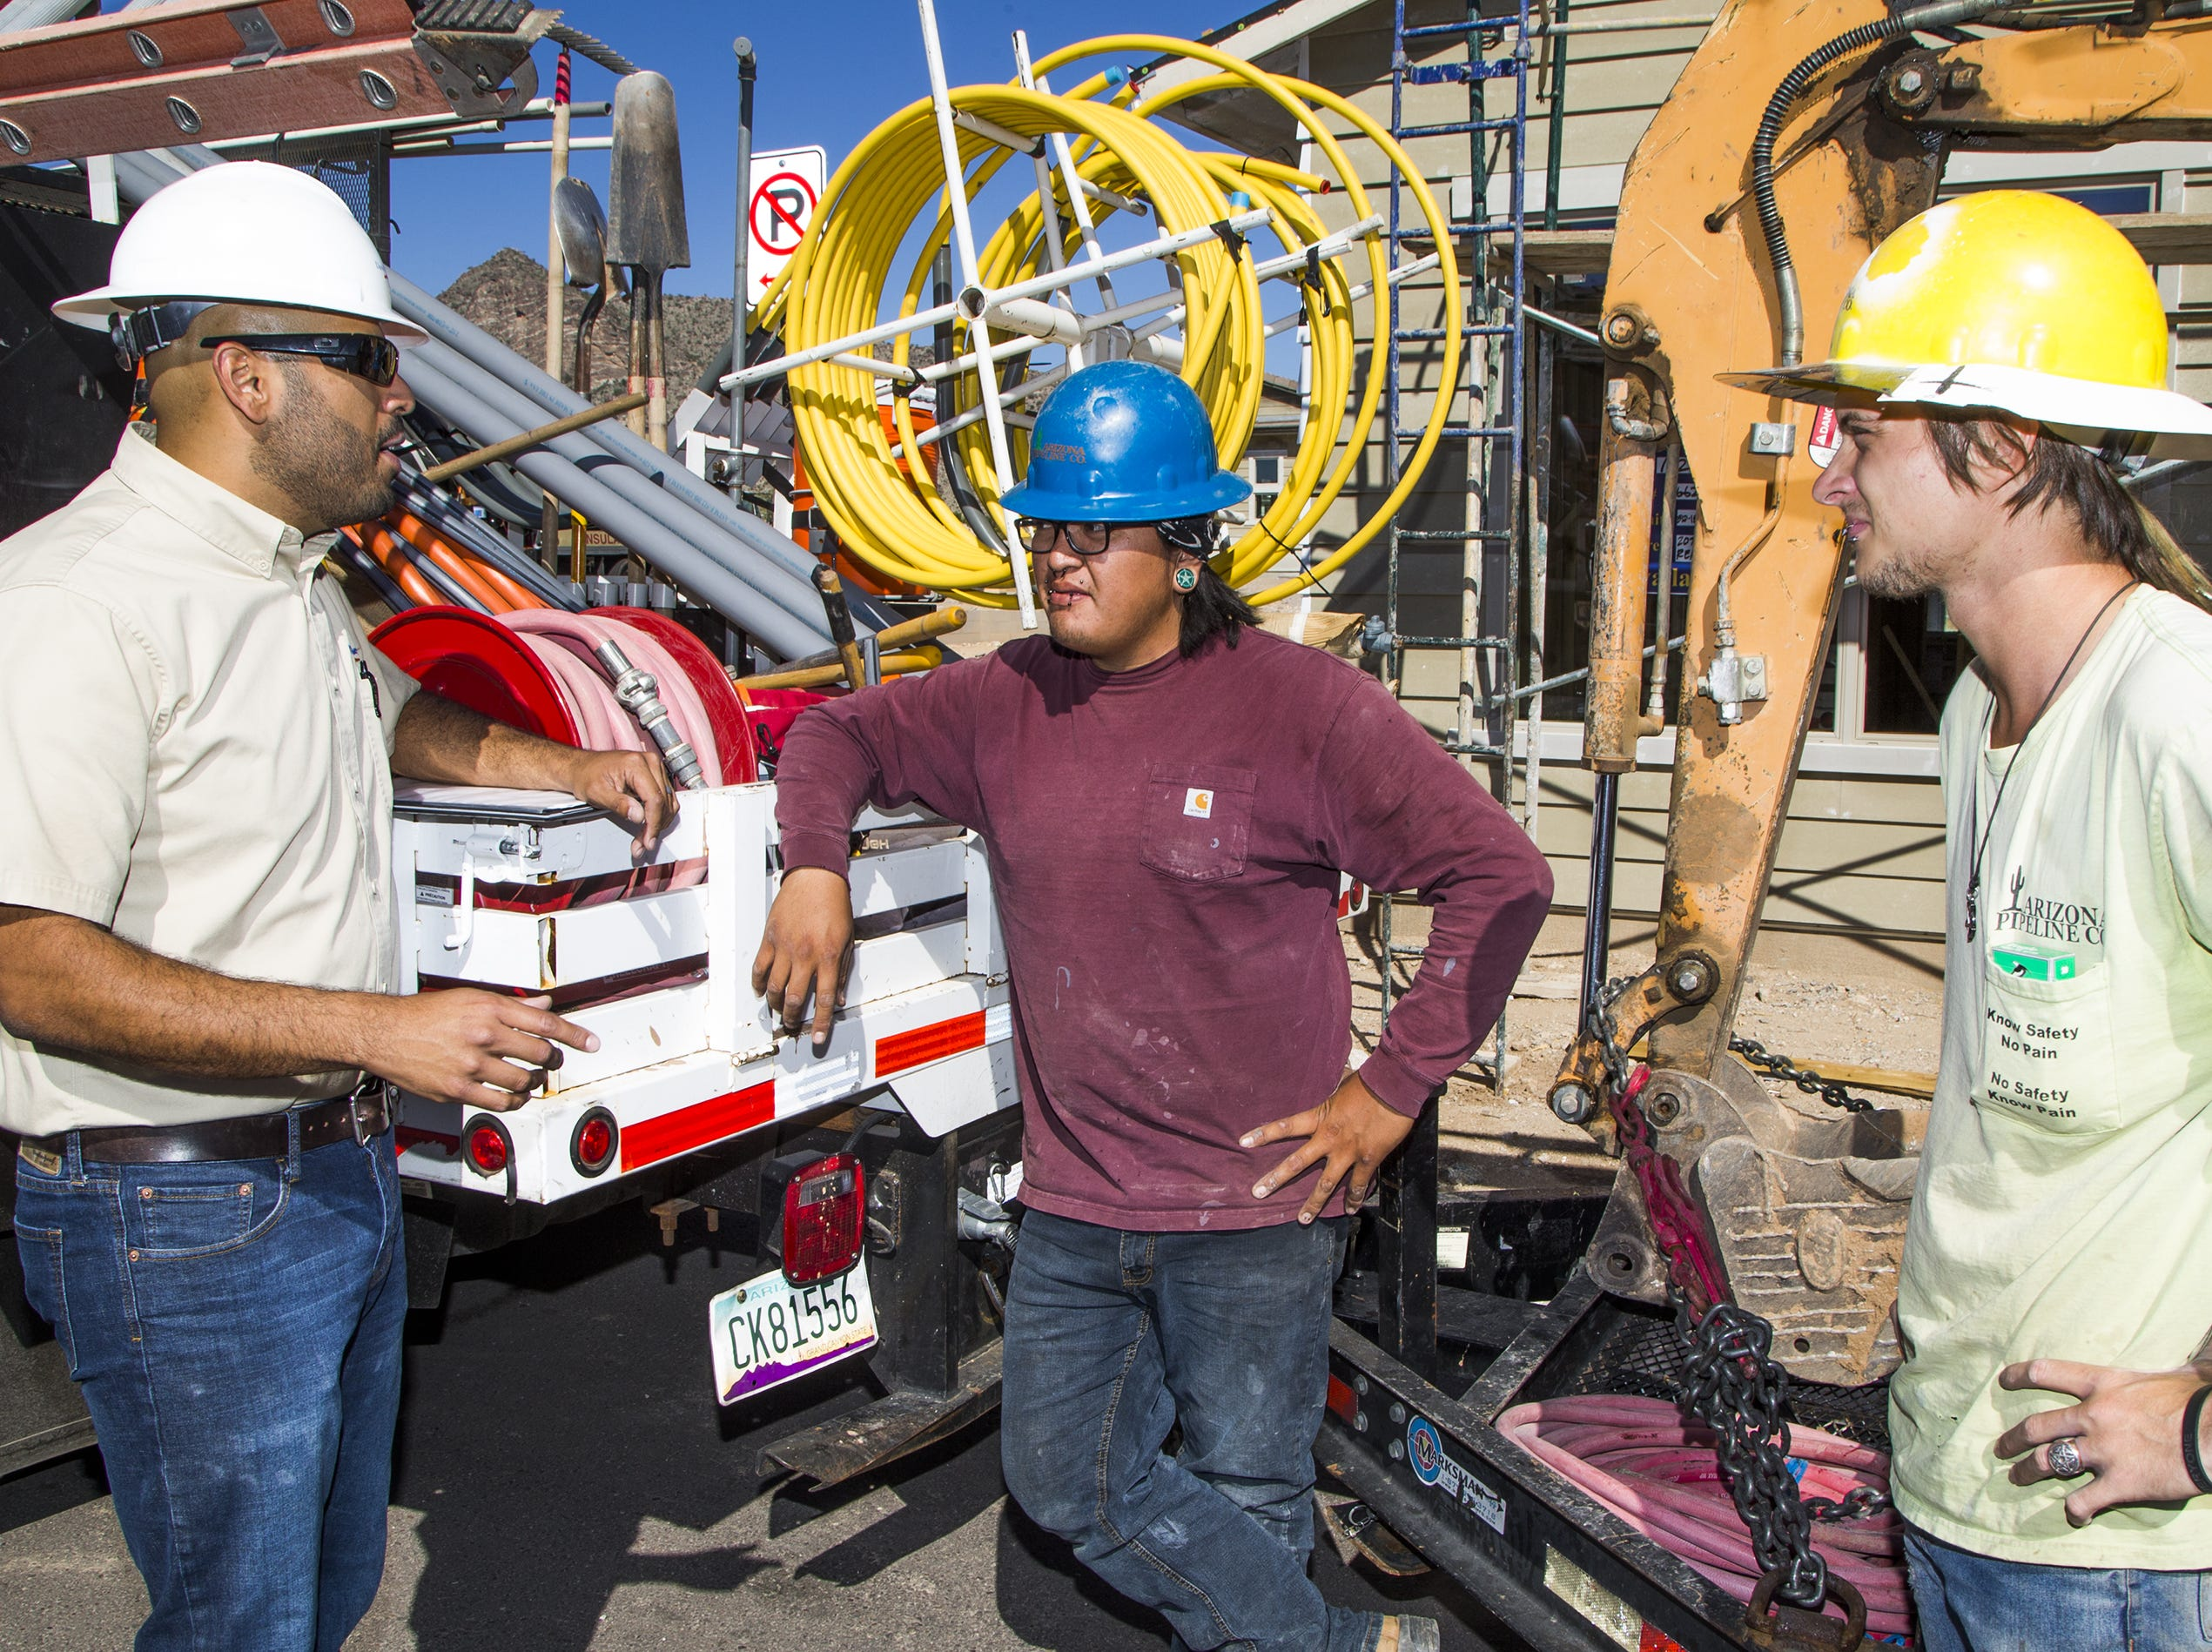 Rudy Del Rio (left) a builder with David Weekley Homes, speaks with MacKenzie Manygoats (middle) and Joshua Willis of Arizona Pipeline Company during installation of gas and electric lines in the Verrado development in Buckeye Nov. 5, 2018.